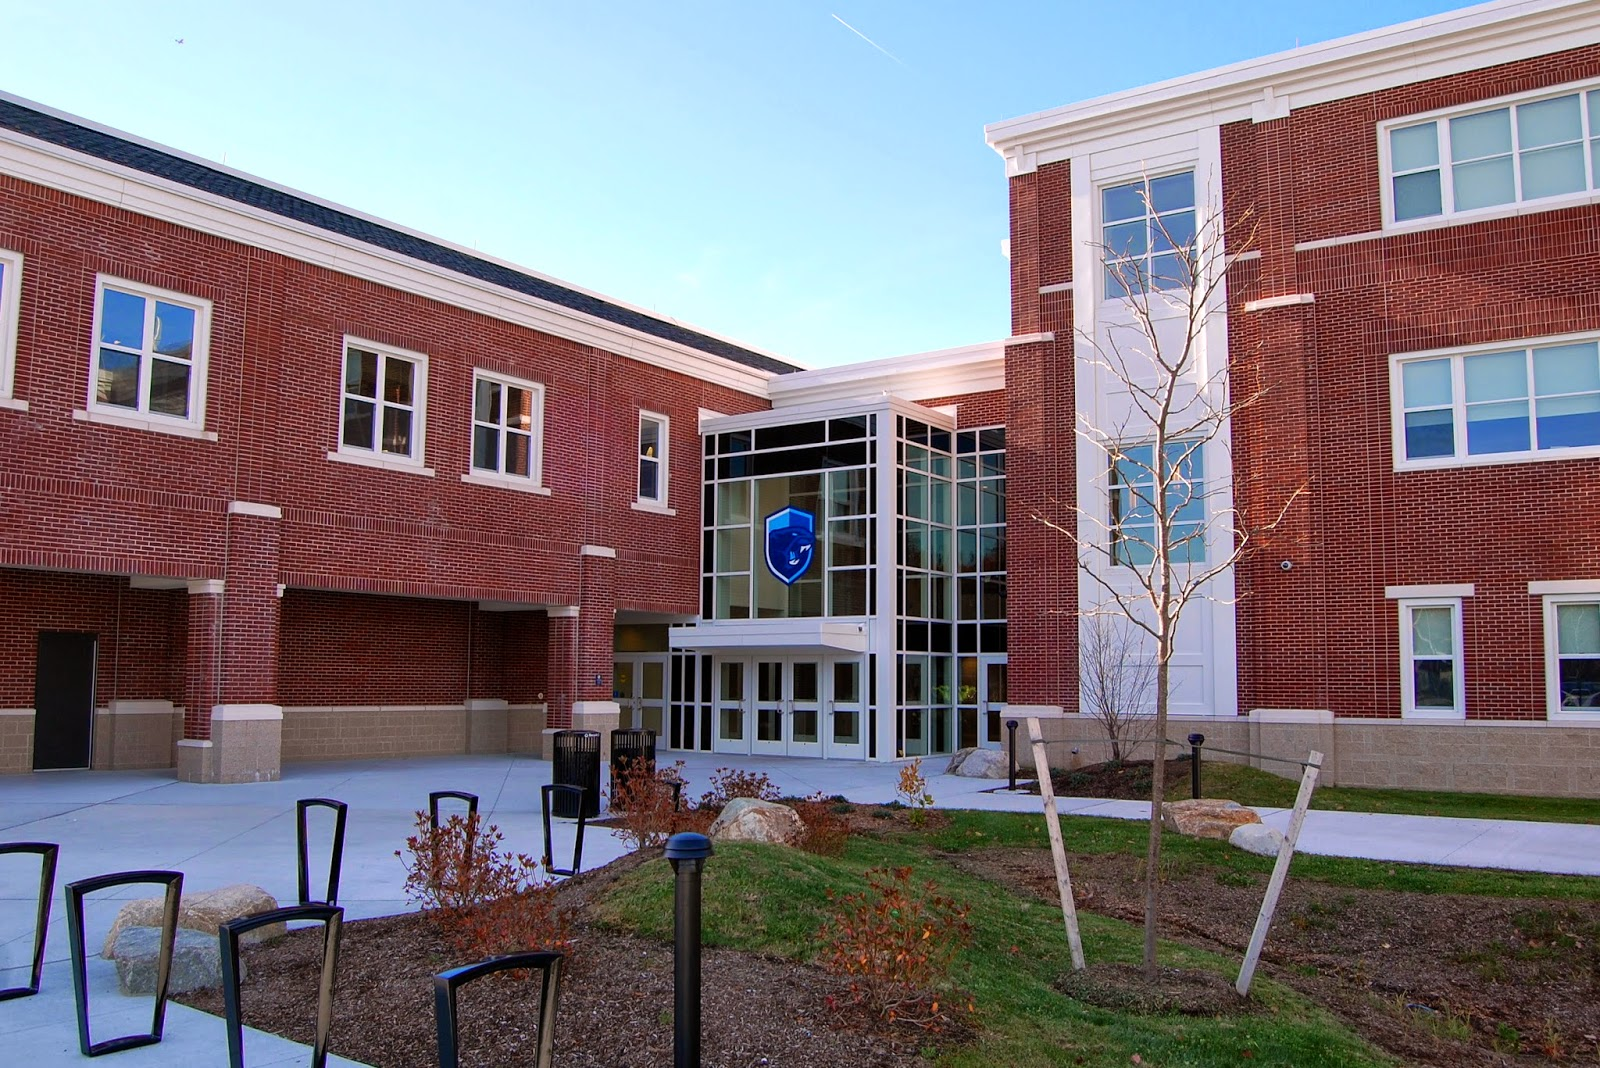 Community Entrance at Franklin High School, also to the Lifelong Learning offices